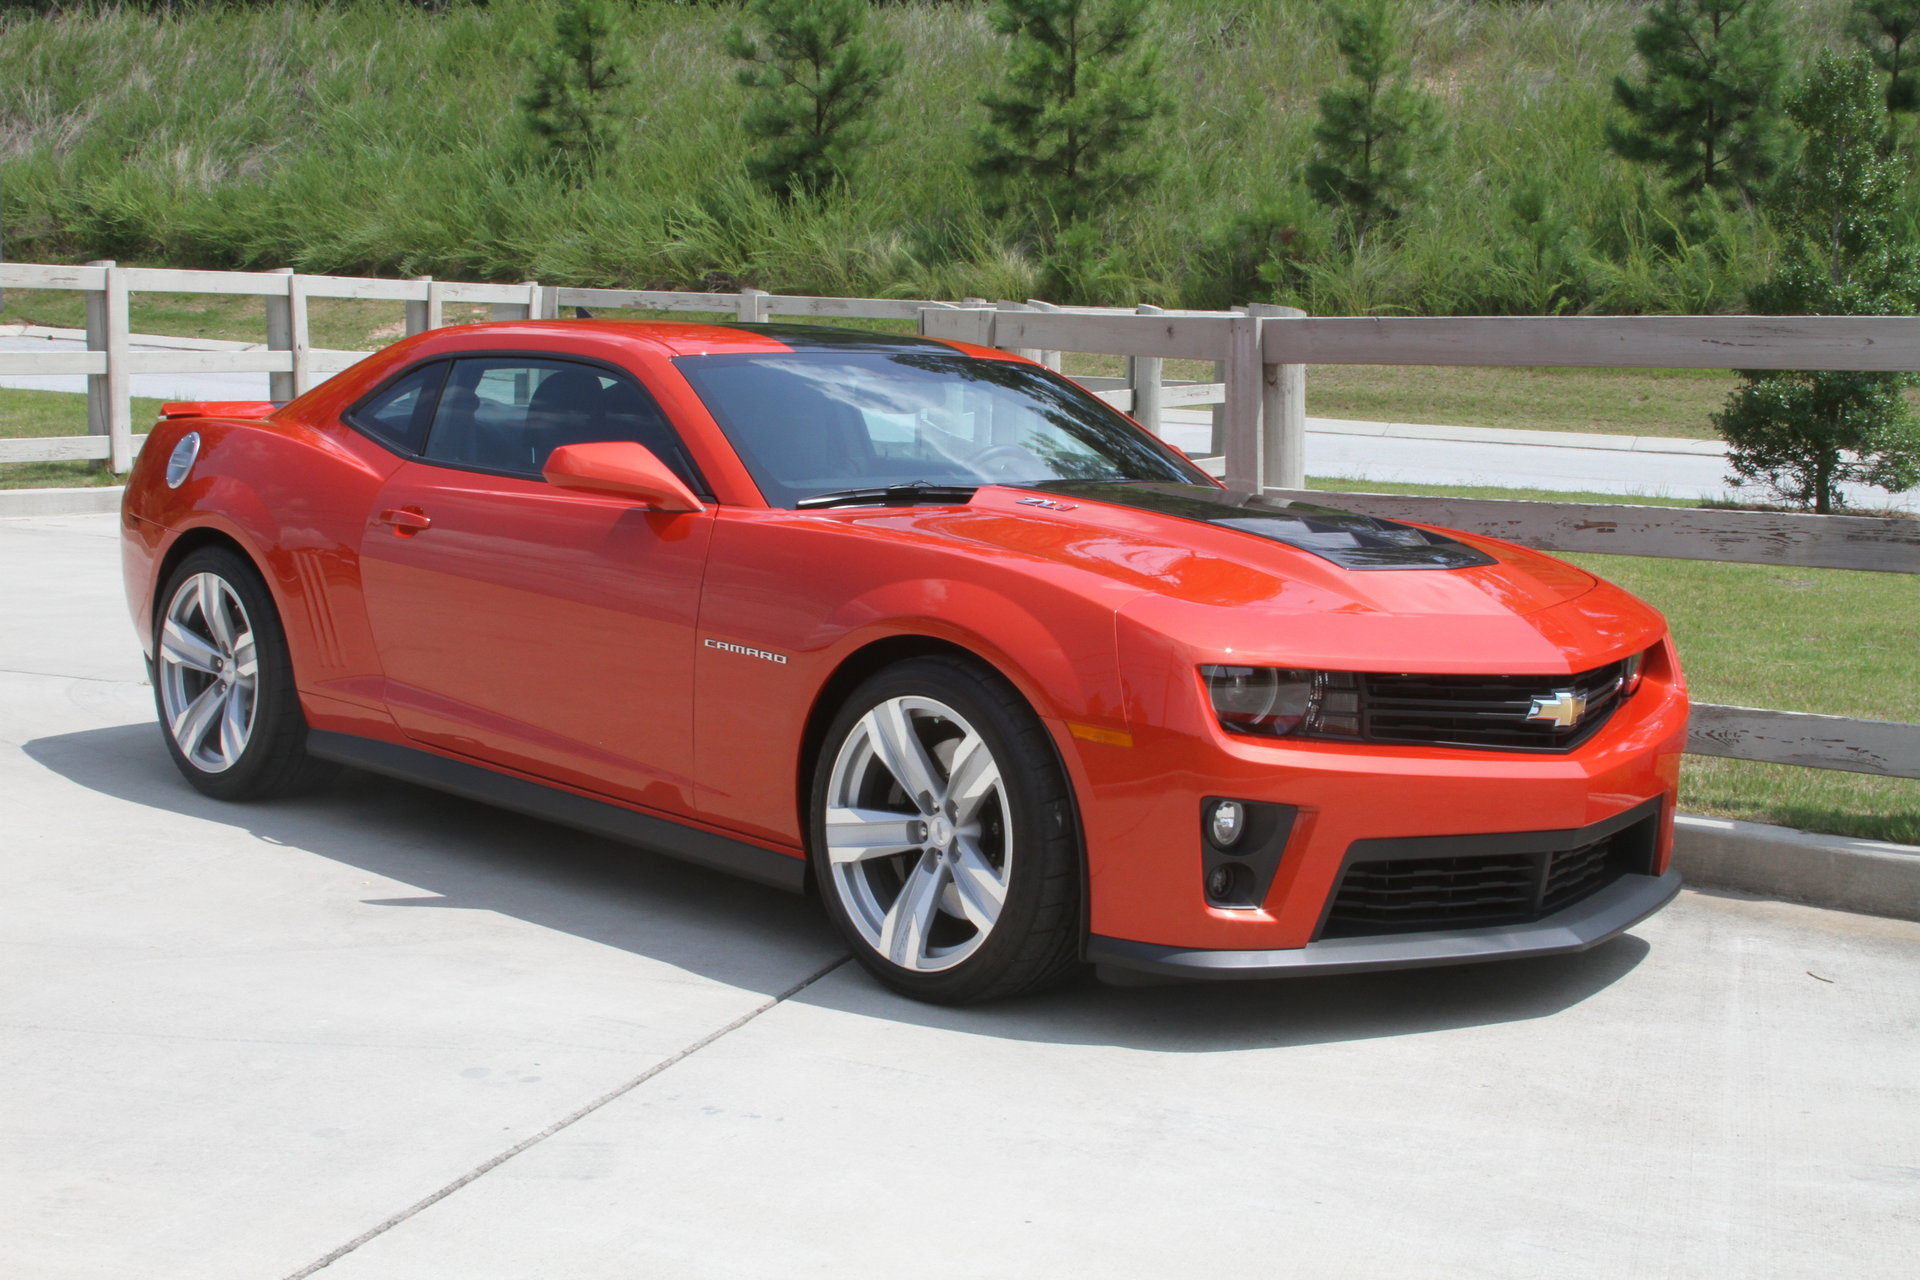 chevy camaro for sale - HD1920×1280